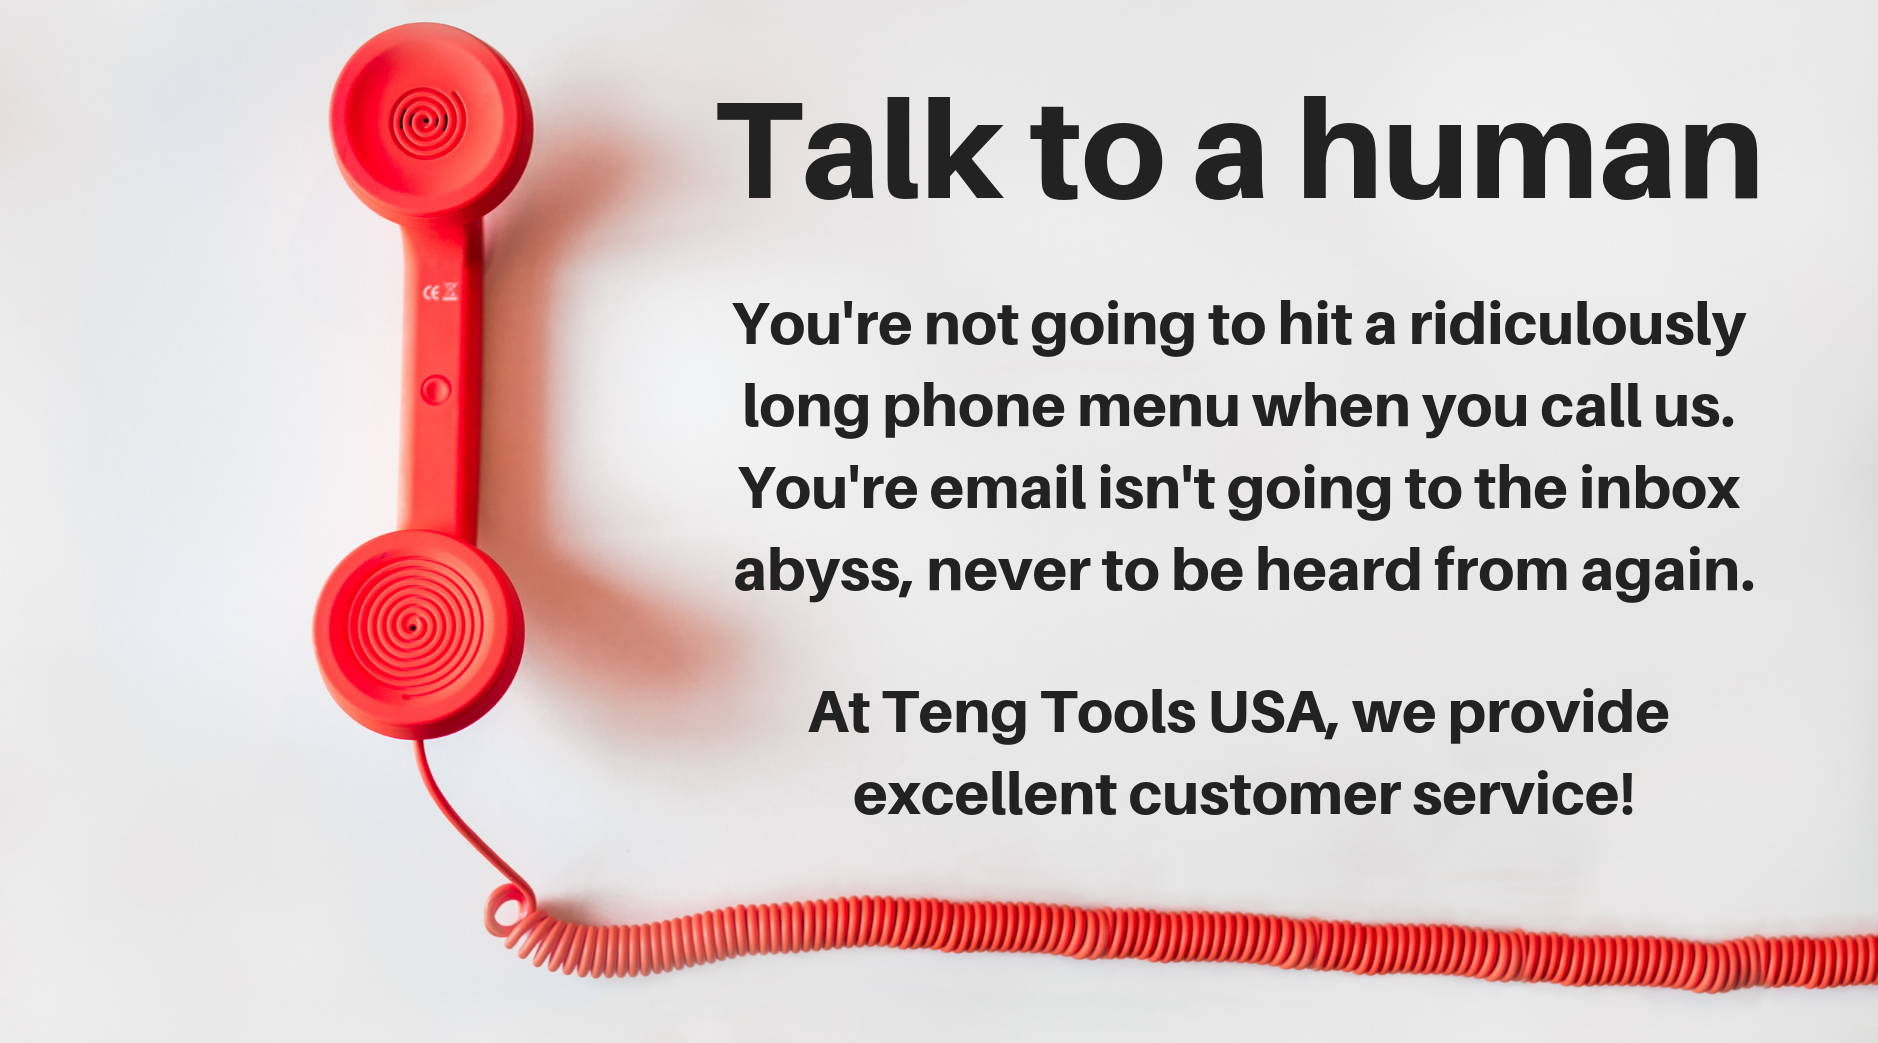 Talk to a human. You're not going to hit a ridiculously long phone menu when you call us. You're email isn't going to the inbox abyss, never to be heard from again. At Teng Tools USA, we provide excellent customer service!